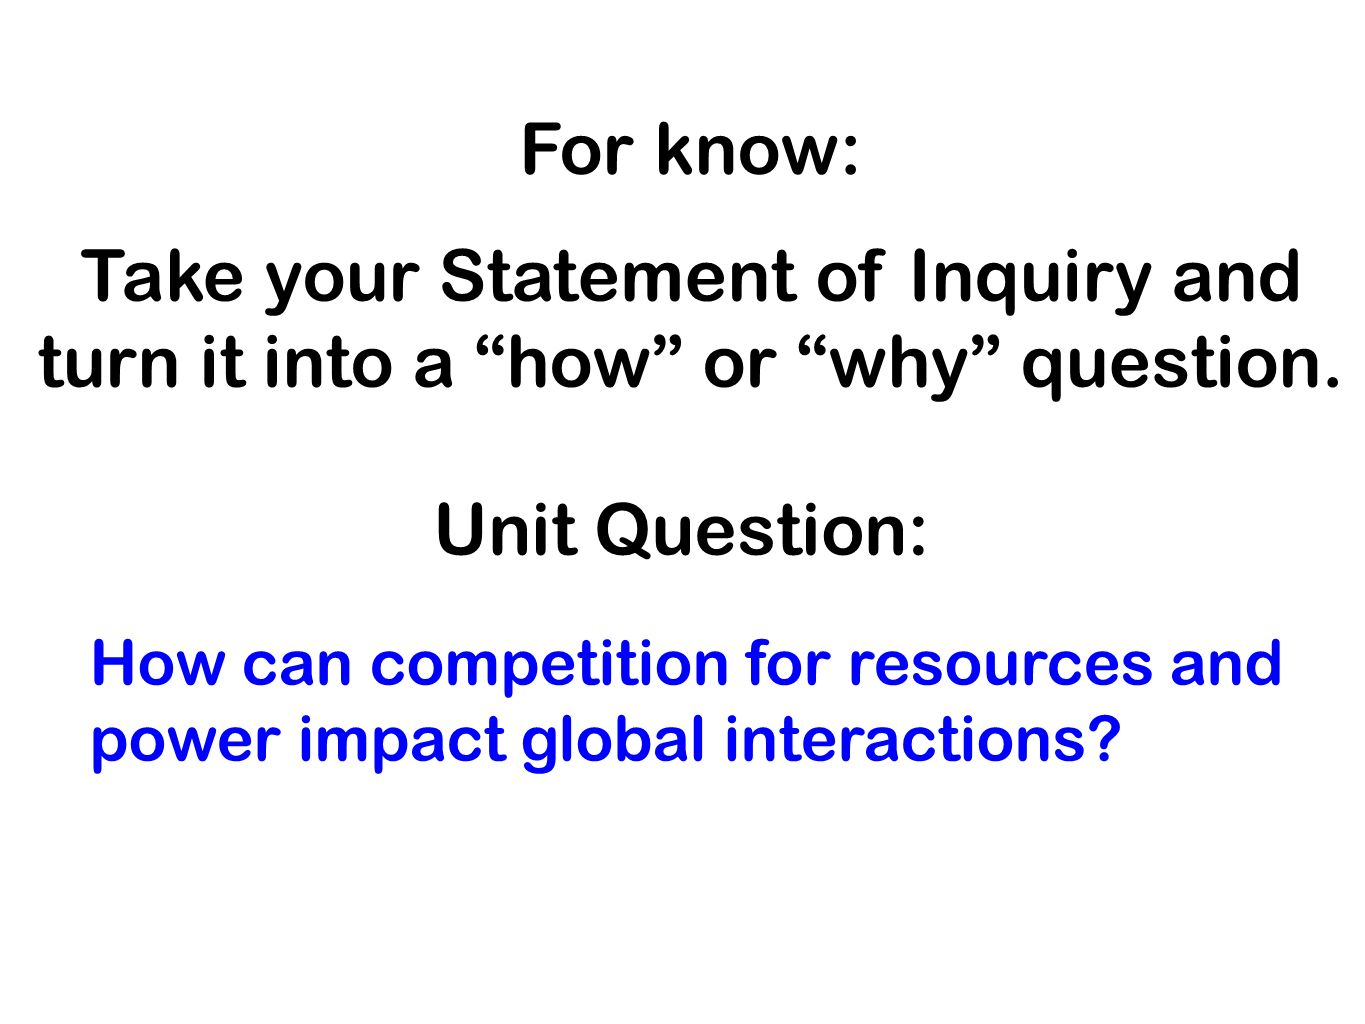 For know: Take your Statement of Inquiry and turn it into a how or why question.